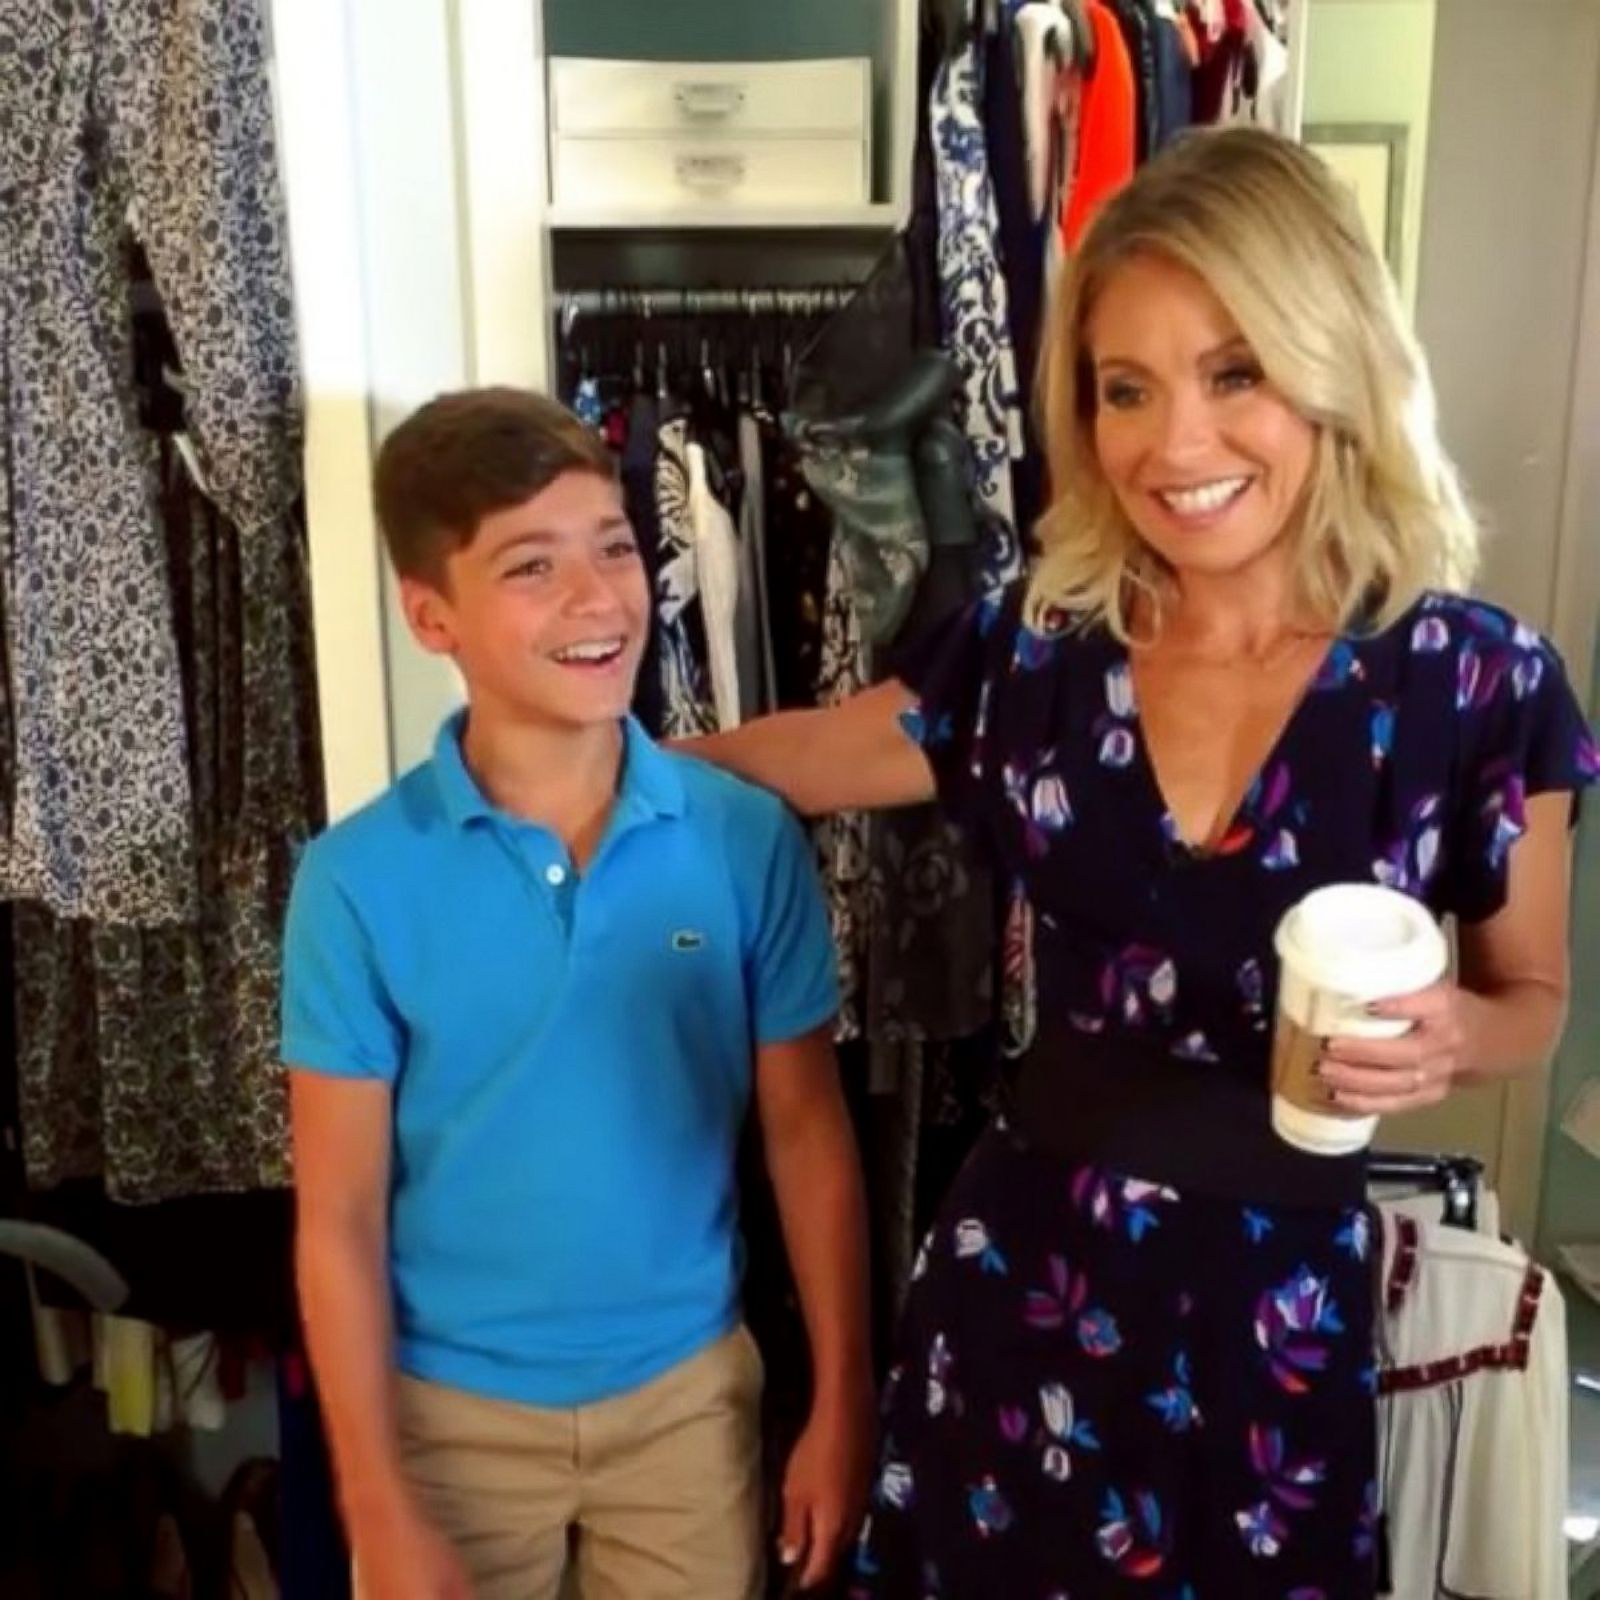 Kelly Ripa Goofs Around With Her Son Joaquin Picture